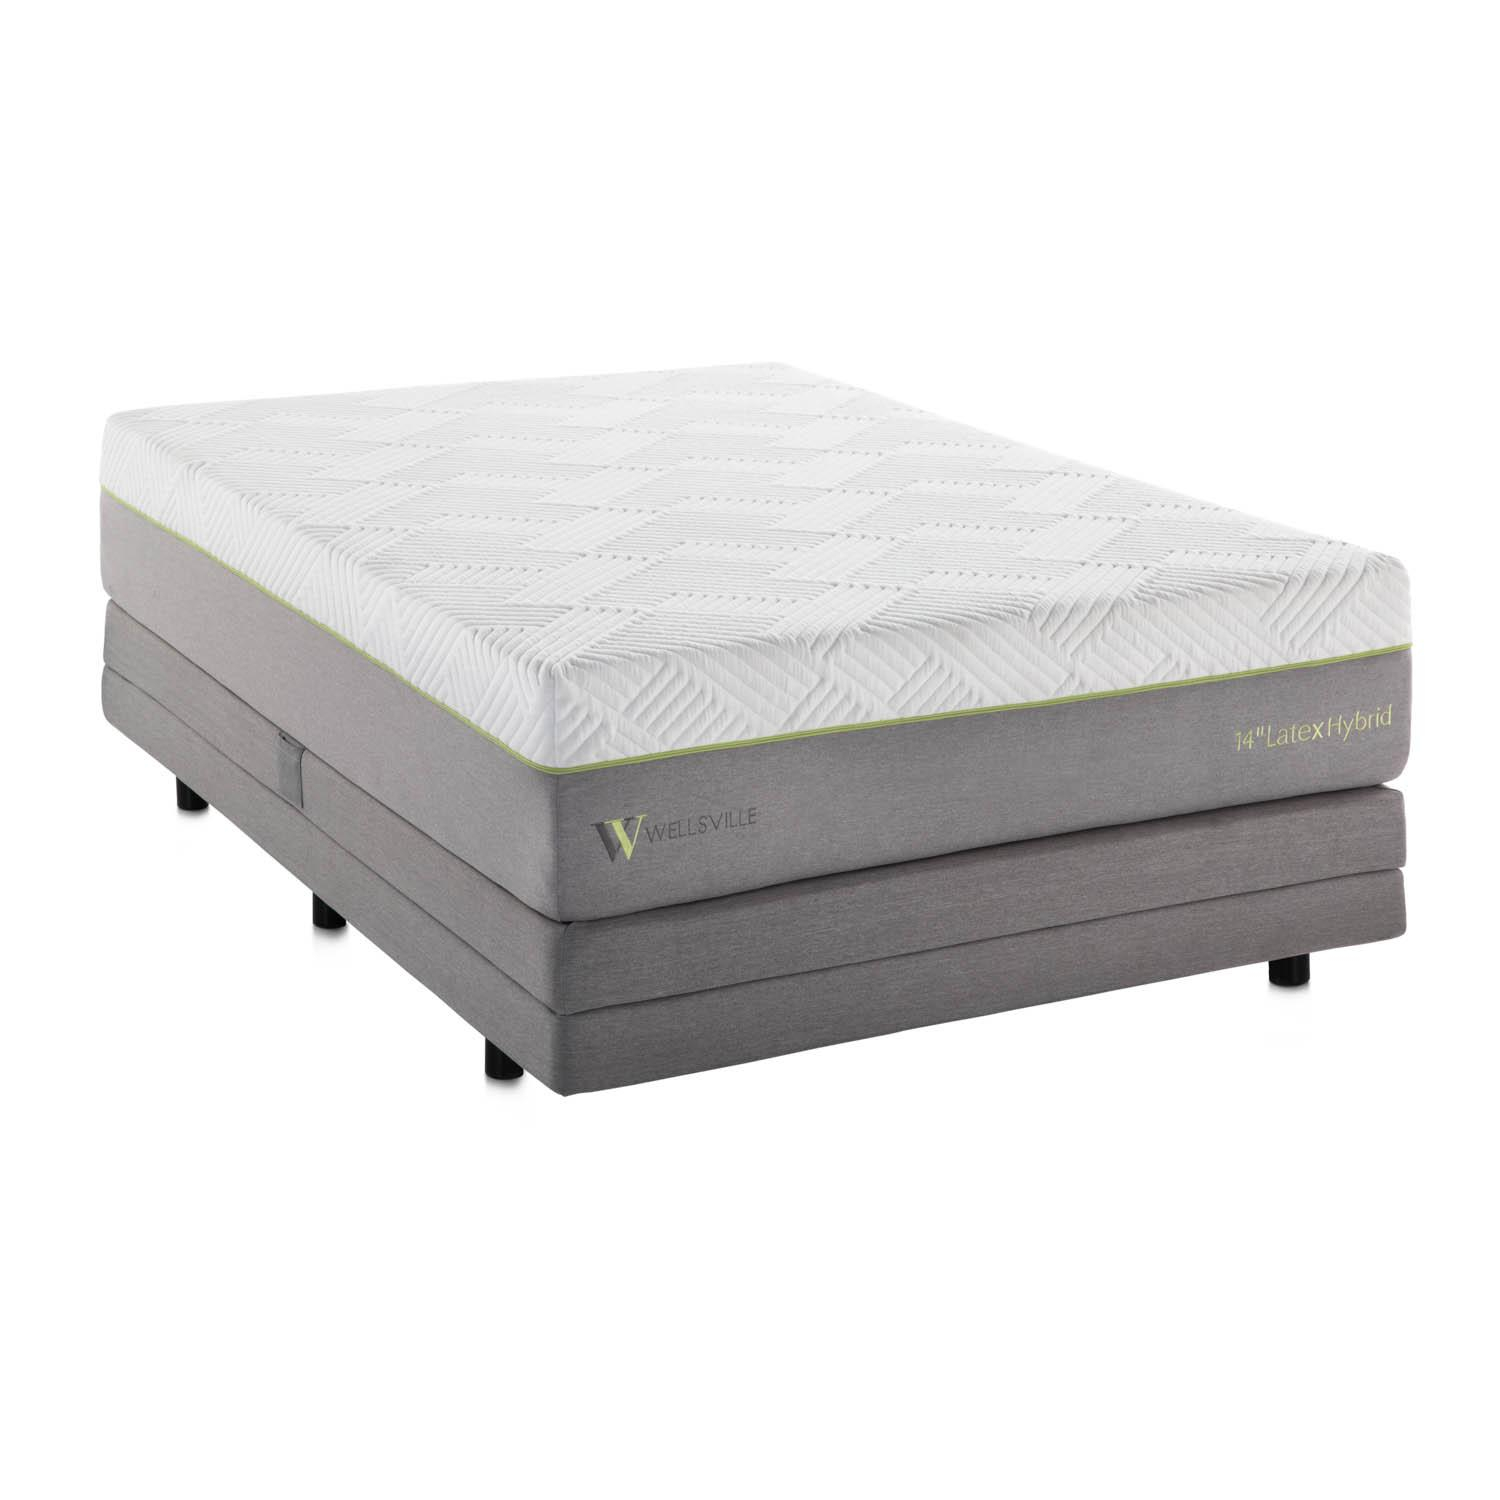 Wellsville 14 Inch Latex Hybrid Mattress Queen,Bayit Furniture Line